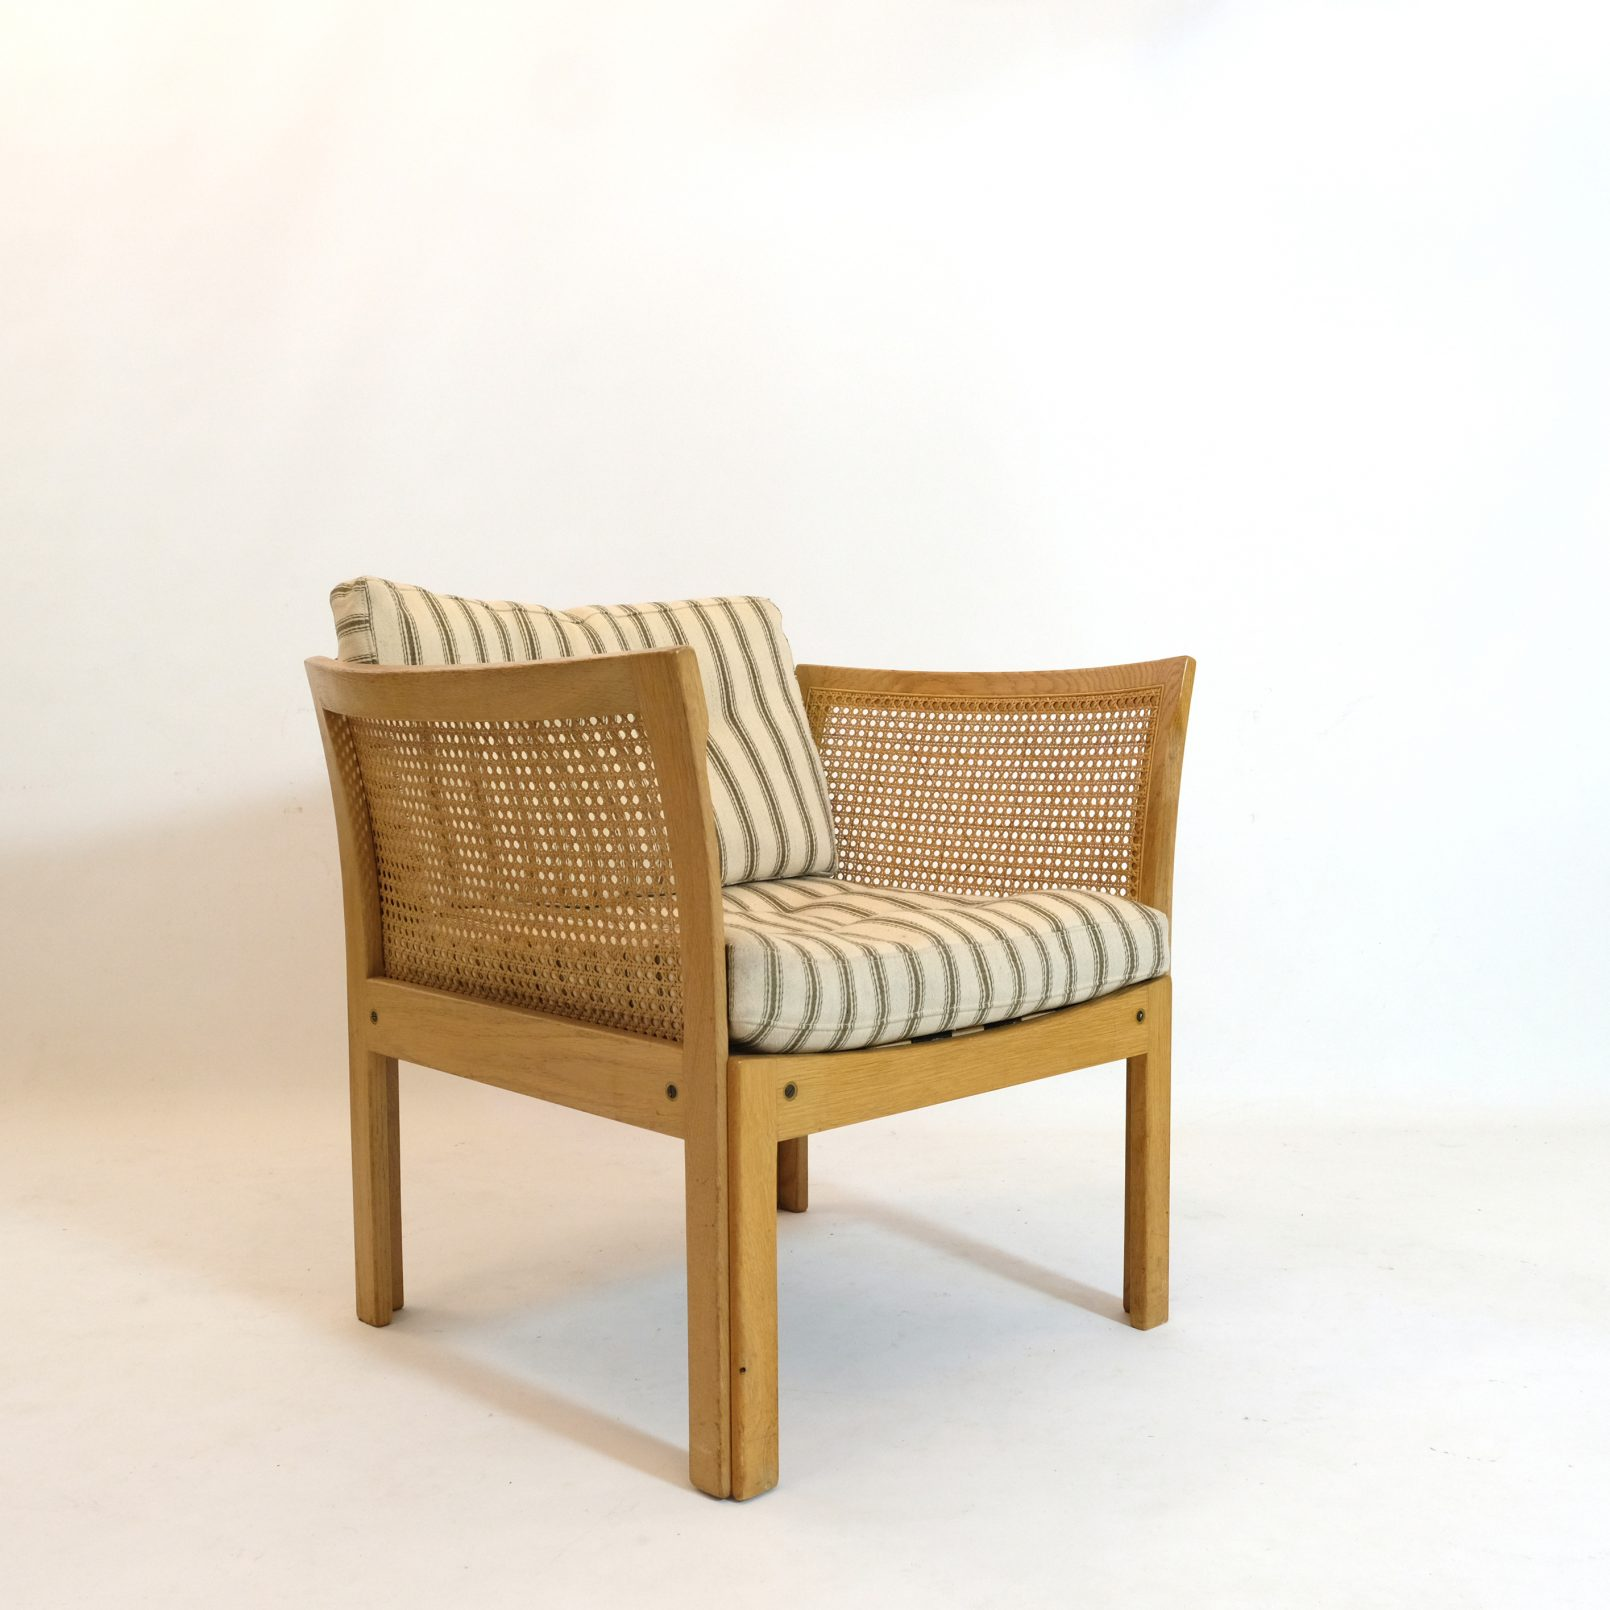 Illum Wikkelsø, Plexus armchair, 1970s, 5 available.